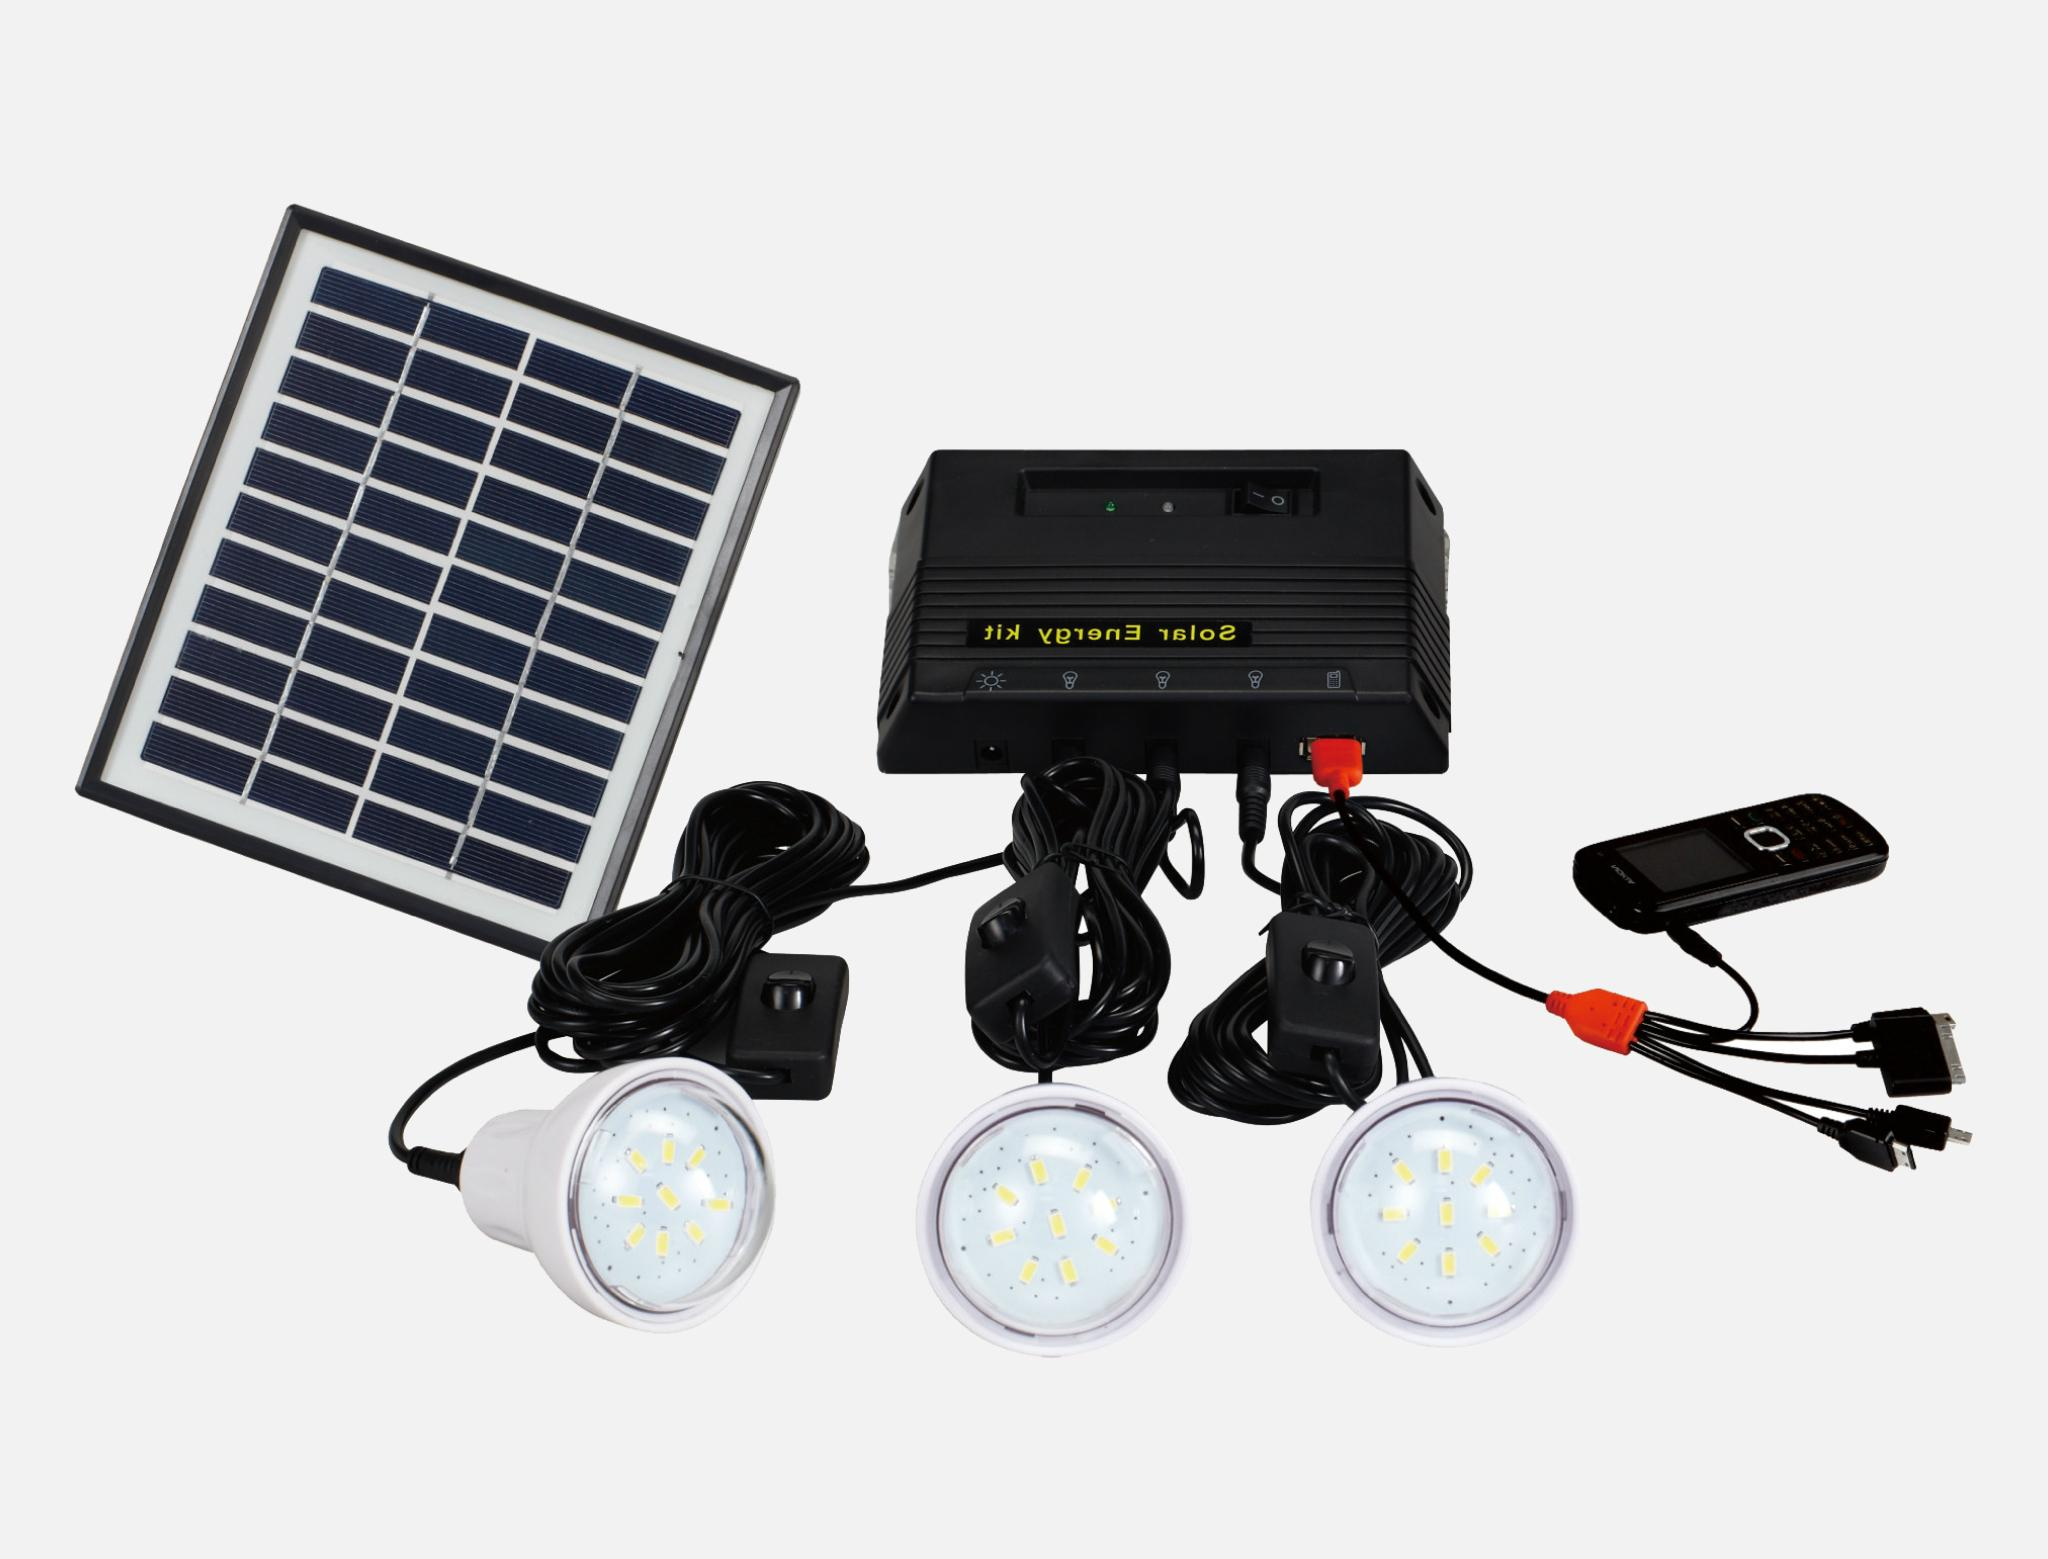 4W Solar Home Lighting Kit - 2 bulbs - MW-SE009-2 - mingwang ...